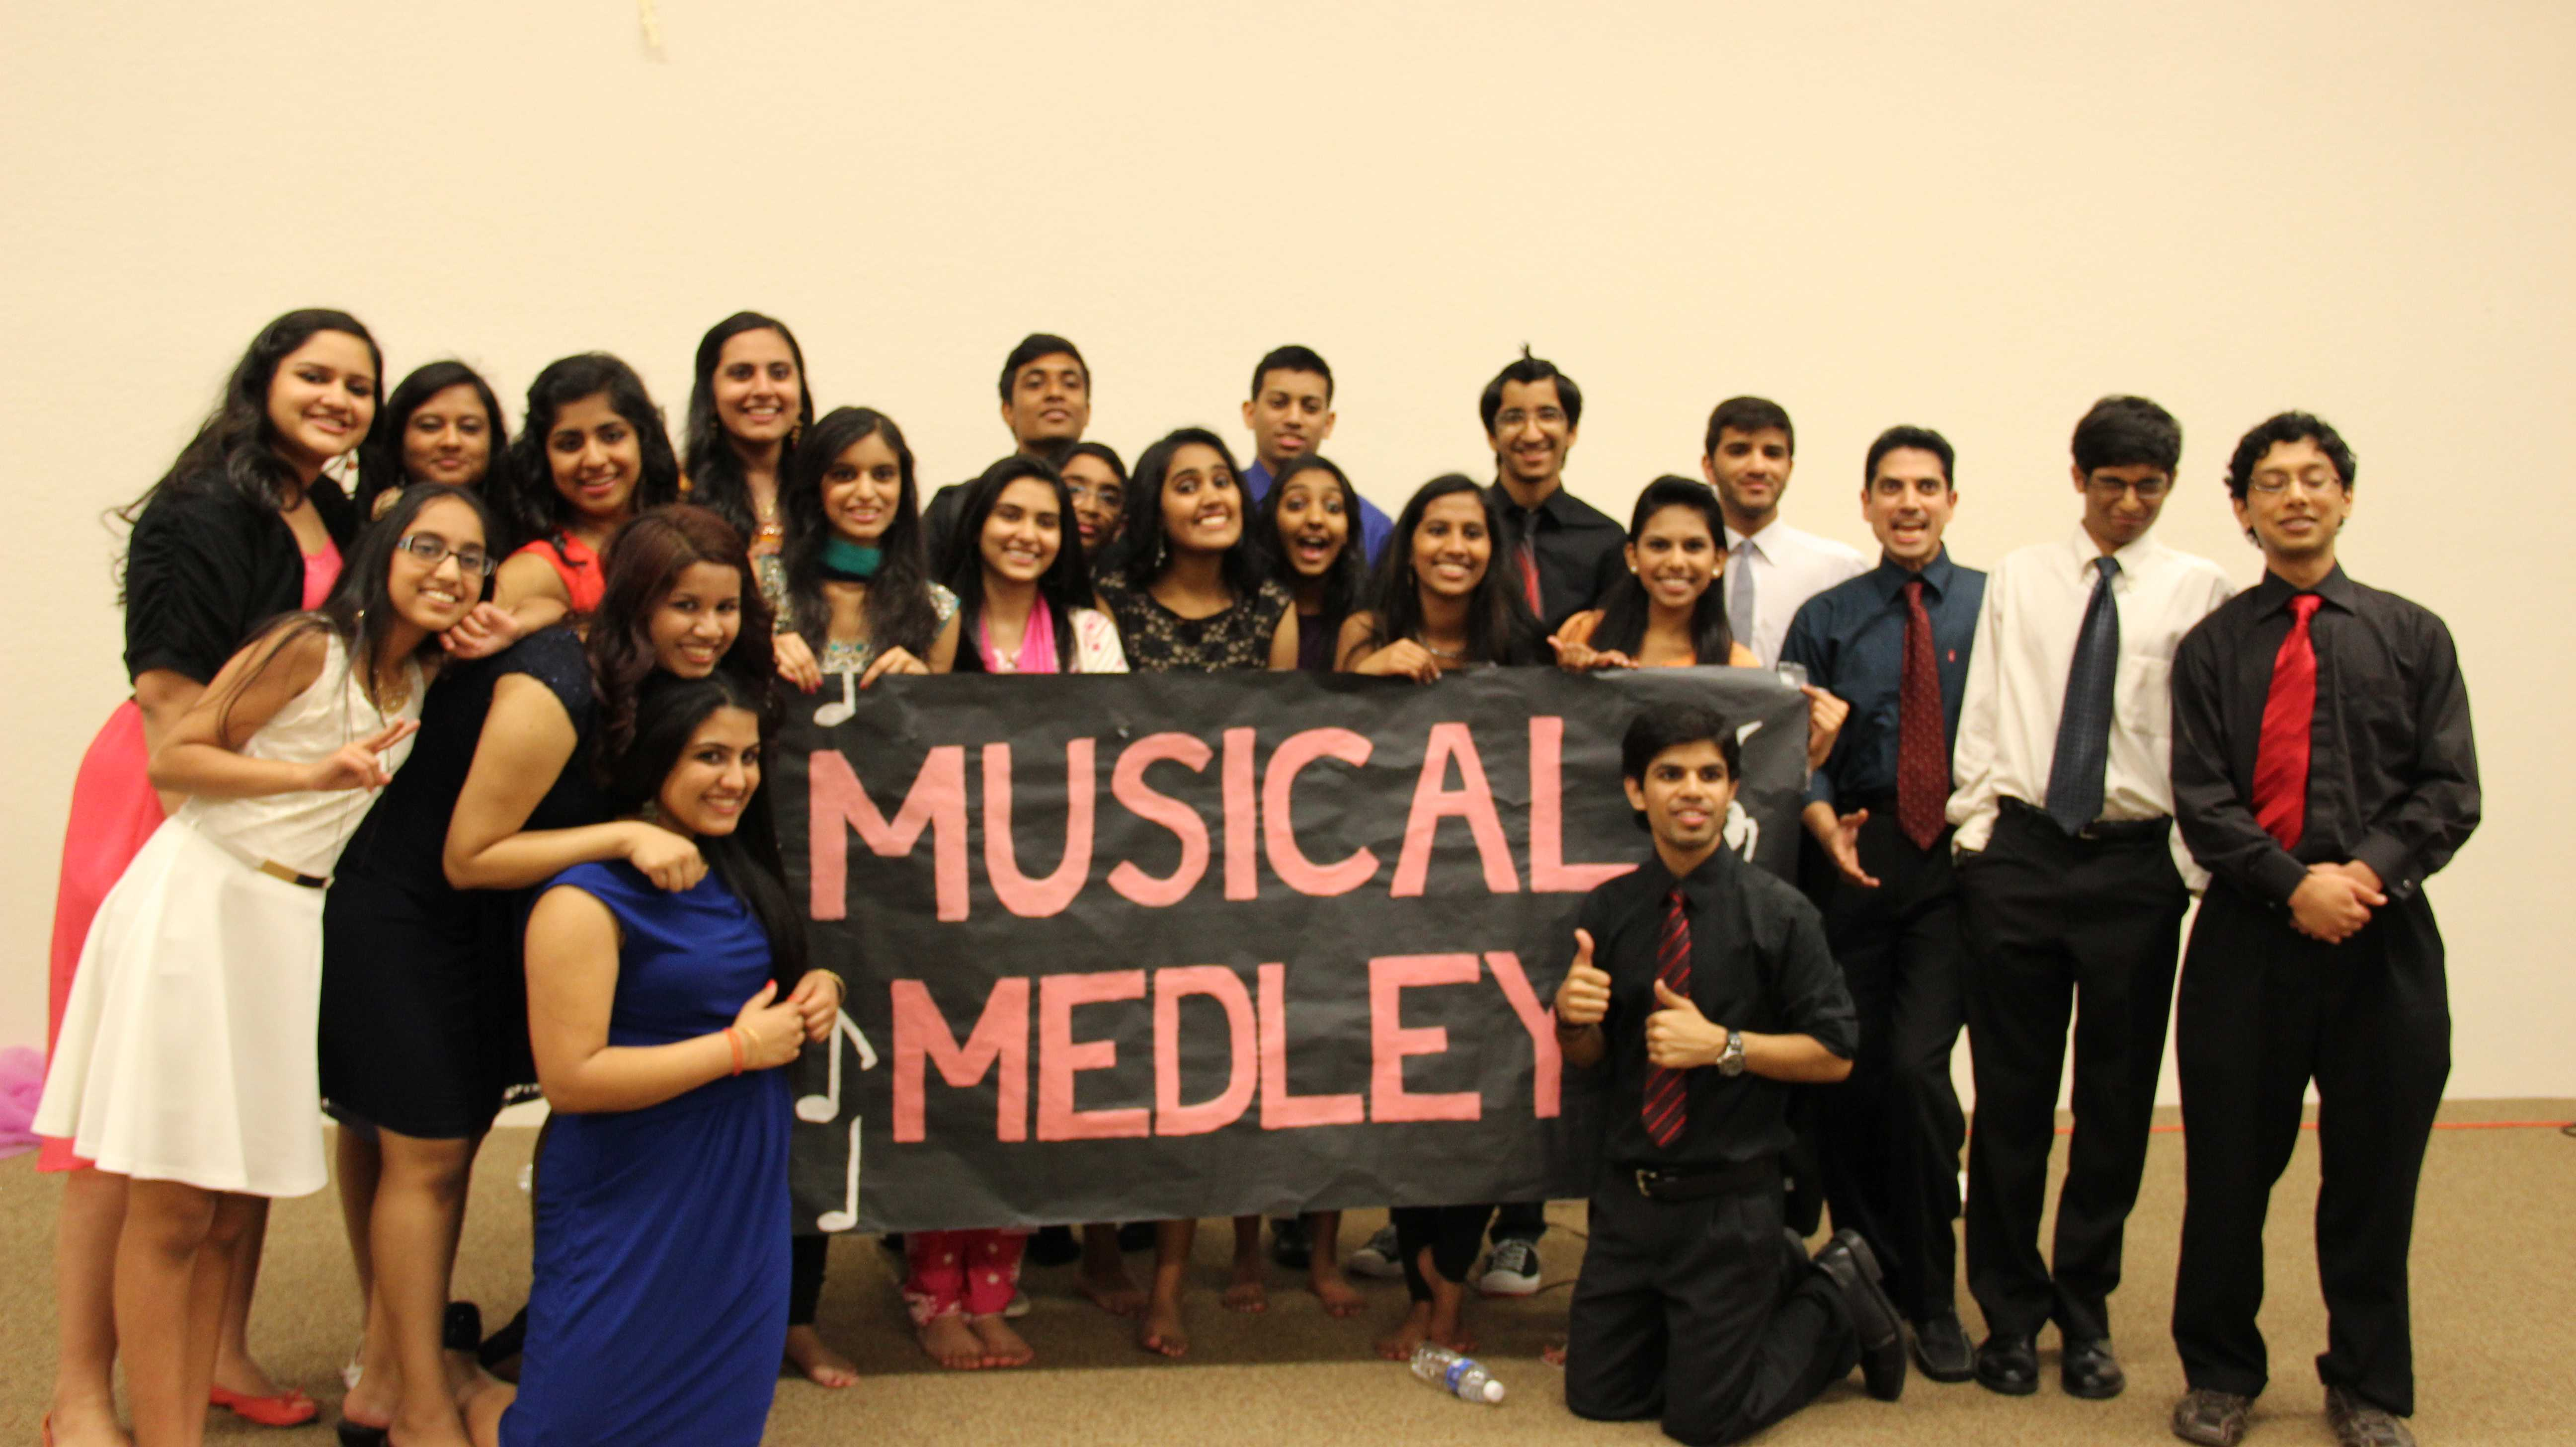 Musical Medley performers. Photo by Pranathi Chitta.